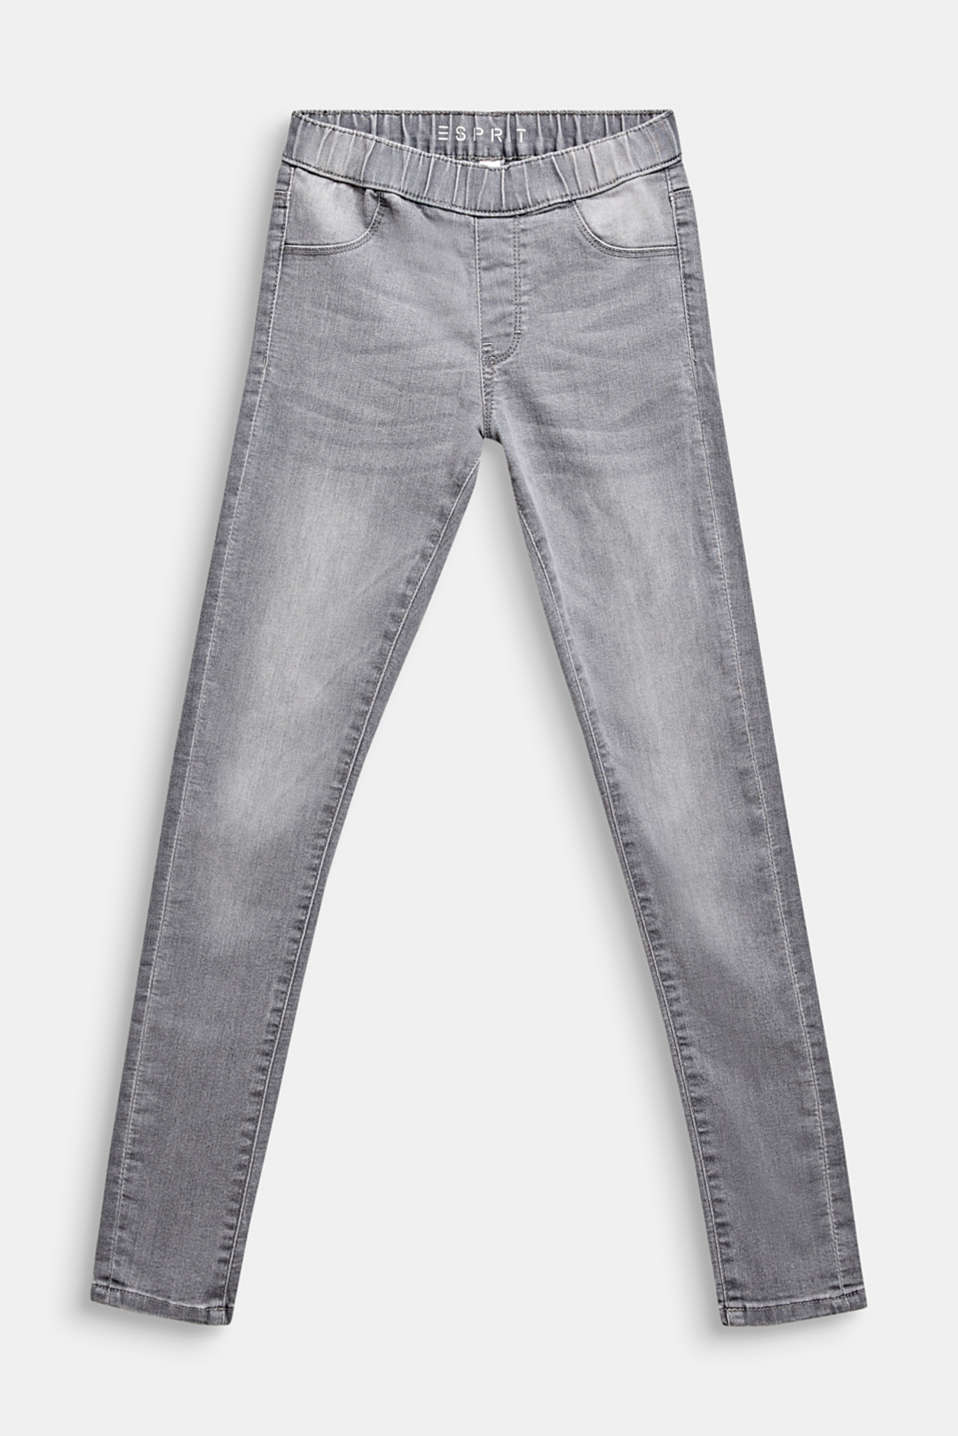 Esprit - Graue Jeggings im Washed-Look